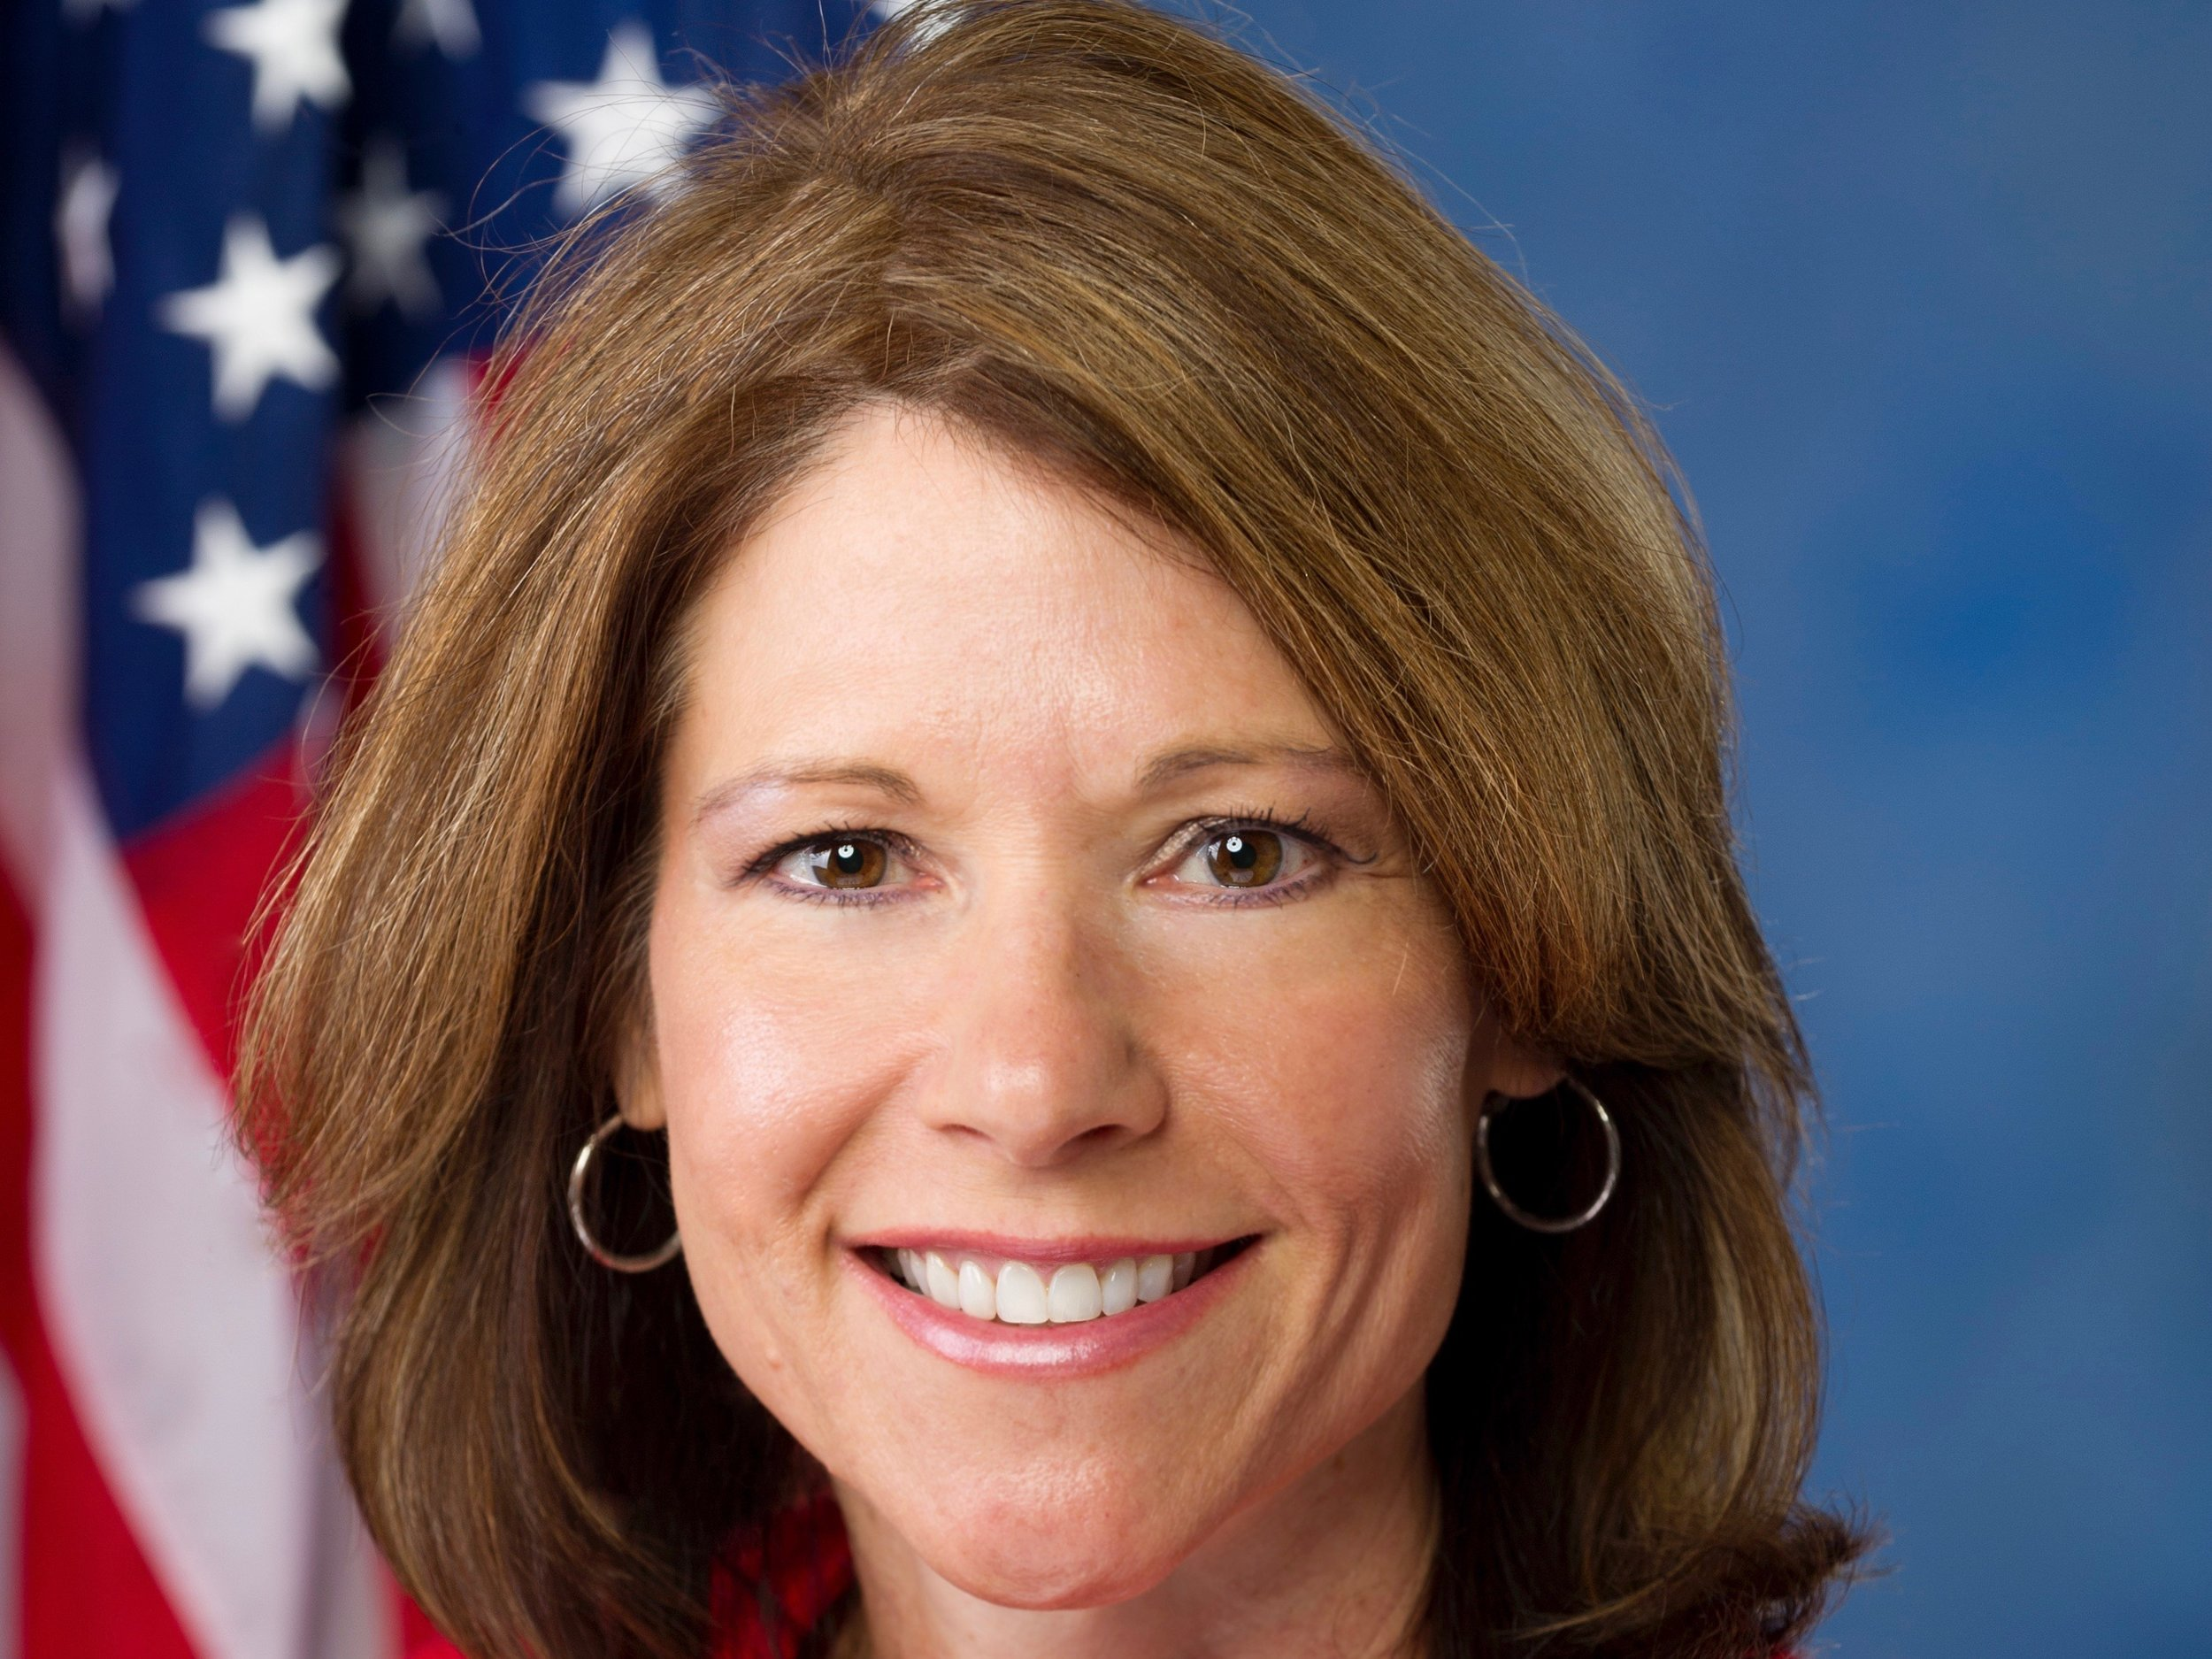 """U.S. Rep. Cheri Bustos accuses President Trump of playing """"a game of chicken"""" with the ongoing government shutdown, which places """"economic stress"""" on farmers. (U.S. Rep. Cheri Bustos)"""